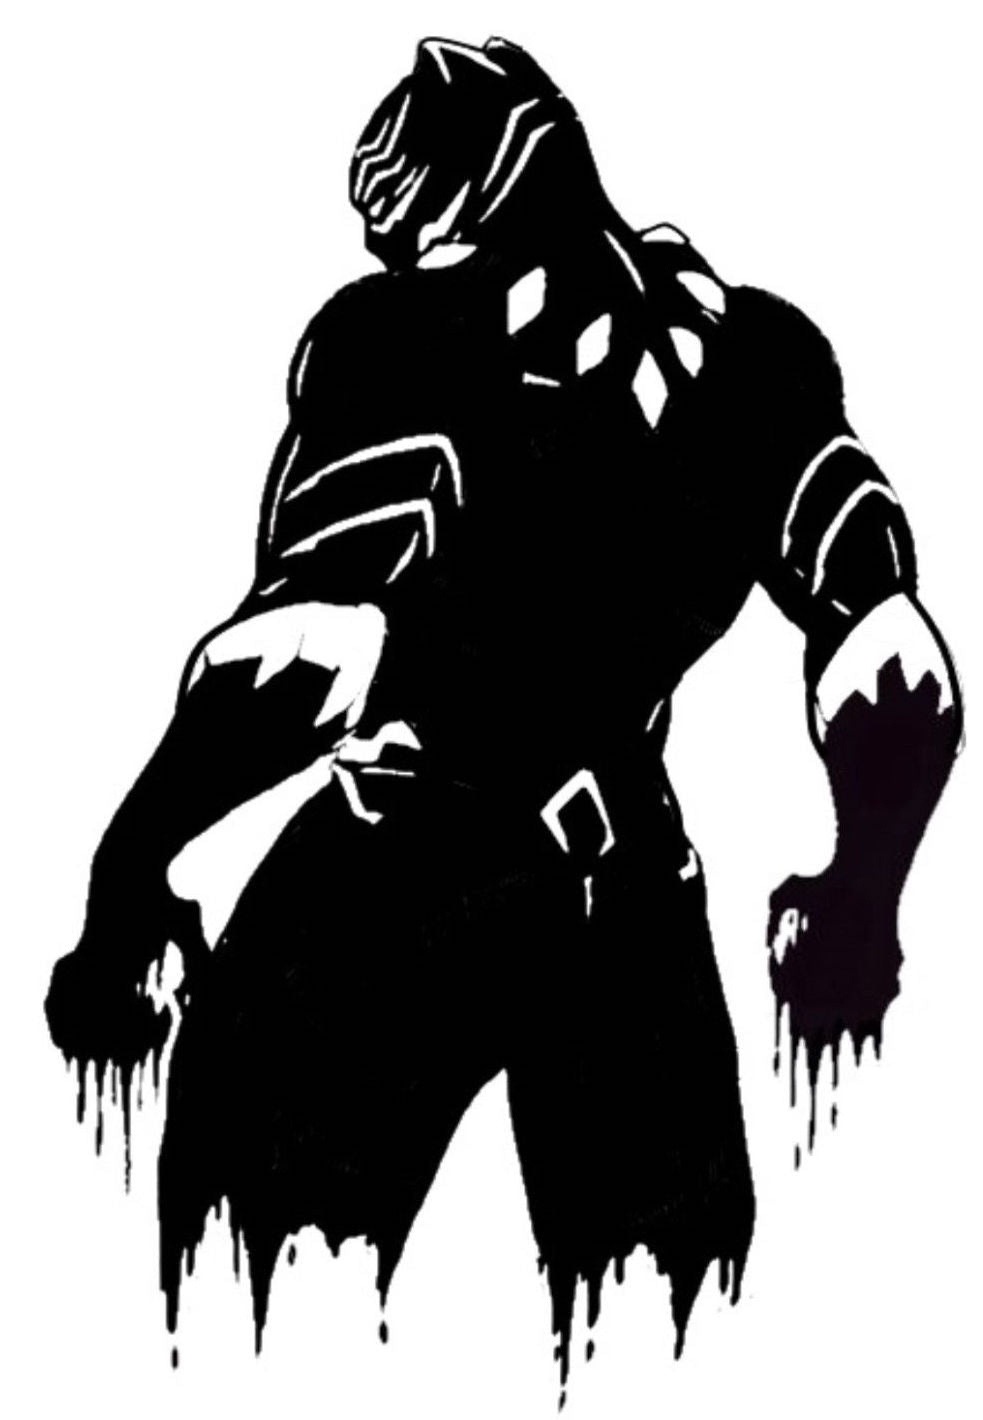 Black Panther Back View Vinyl Decal/Sticker